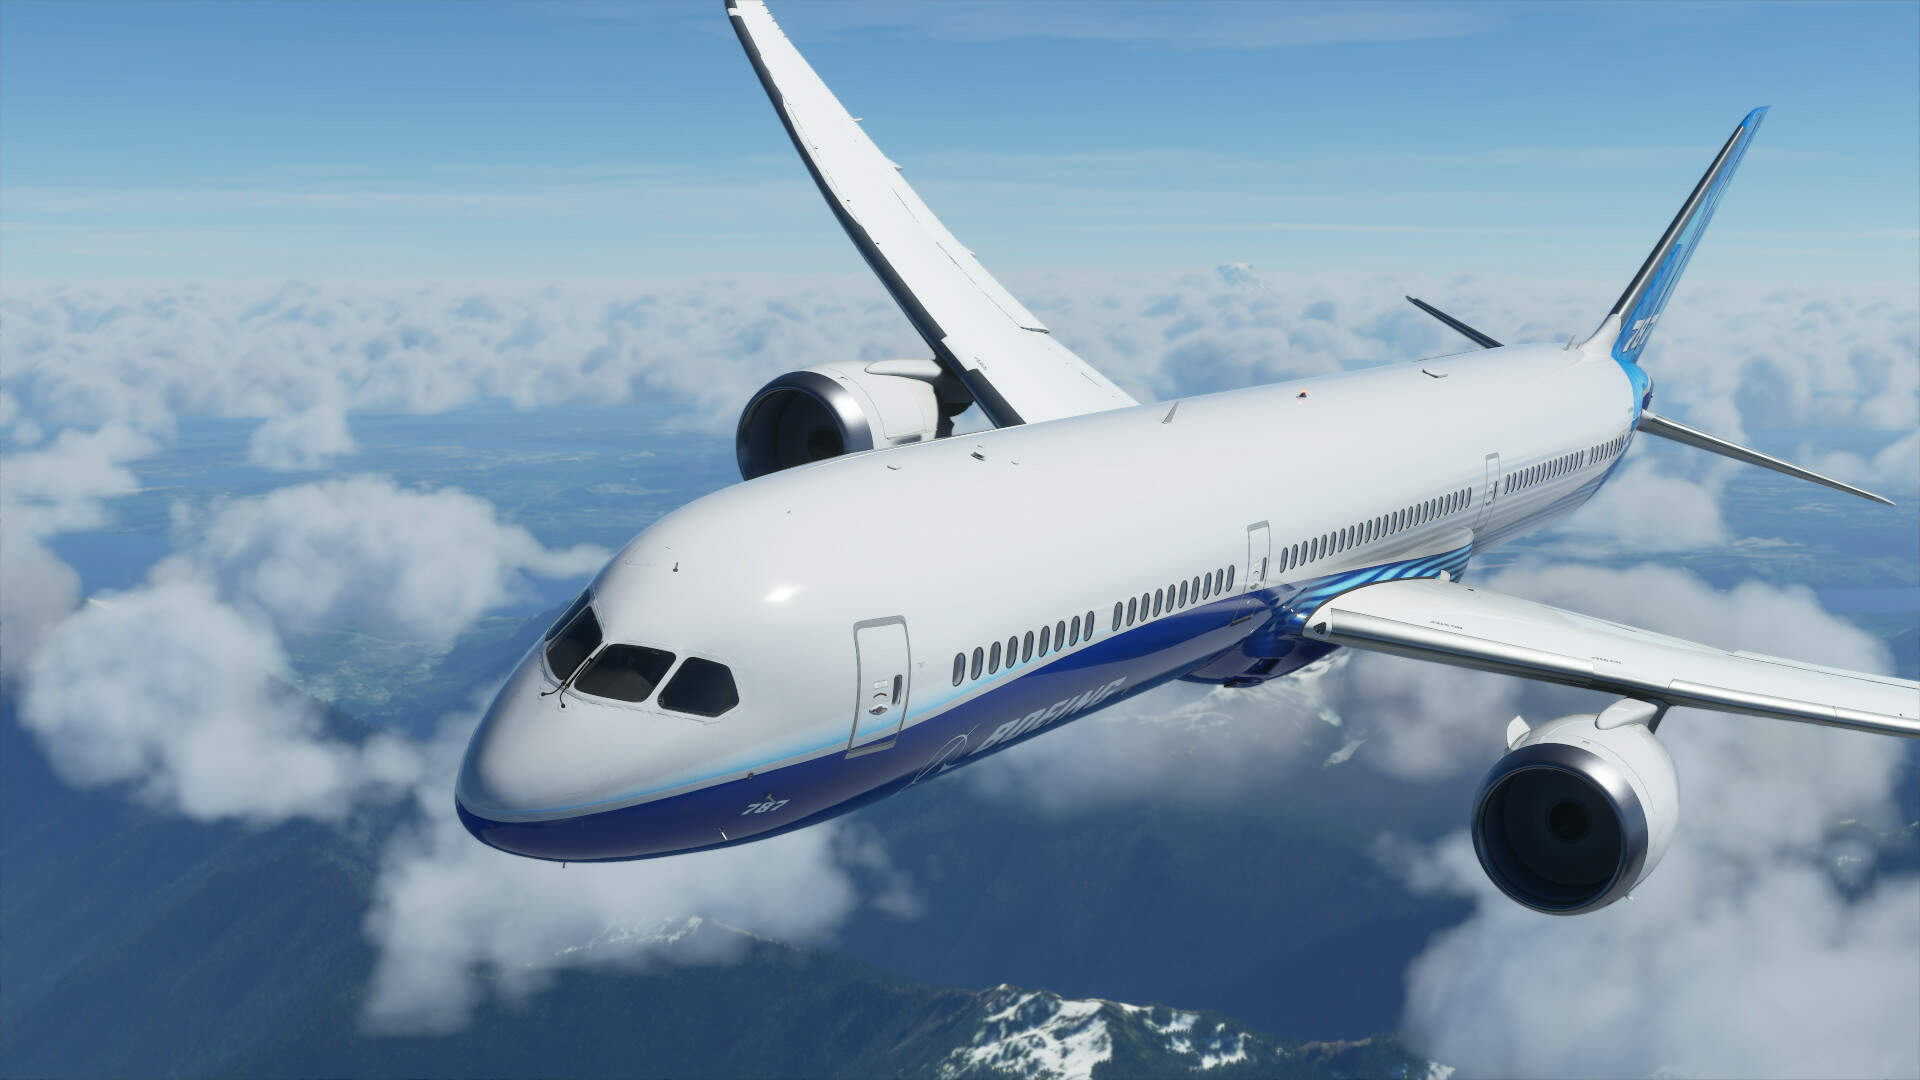 USG Game of the Month: Microsoft Flight Simulator 2020 is a Vision of the Future